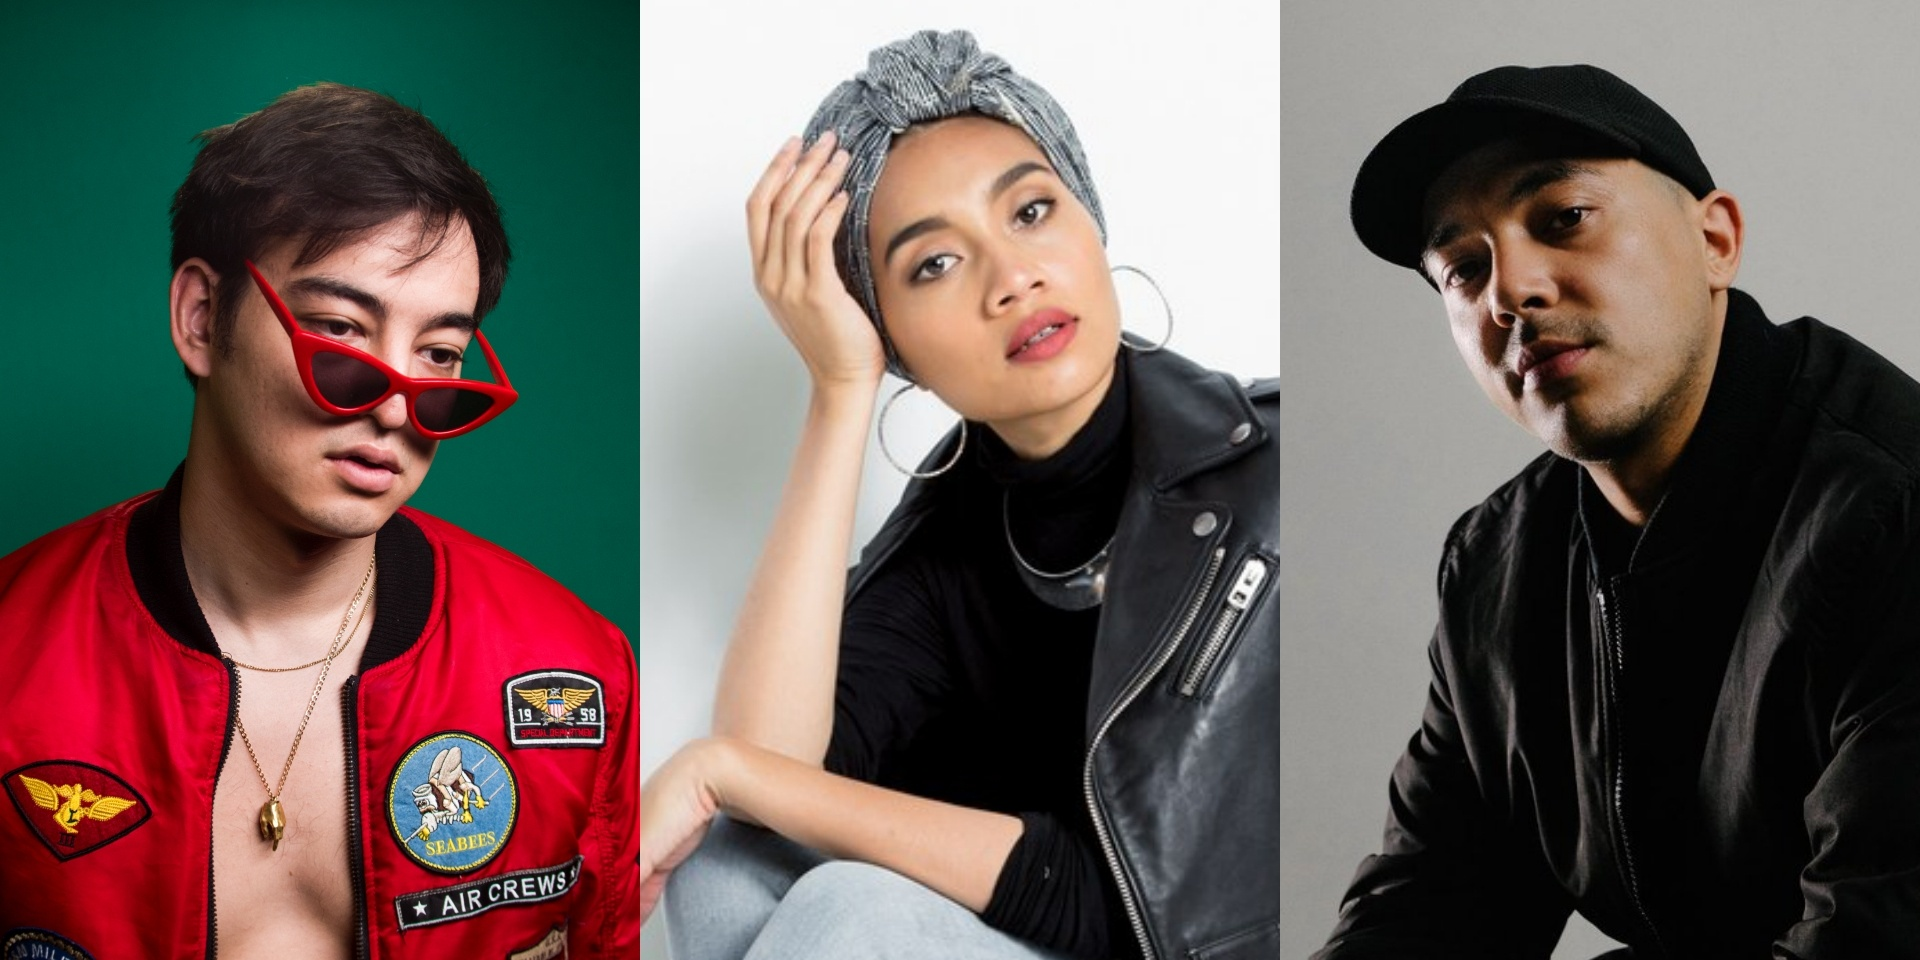 Good Vibes Festival 2019 announces second wave lineup and additional Boiler Room stage – Yuna, Joji, SonaOne, BAYNK, and more confirmed